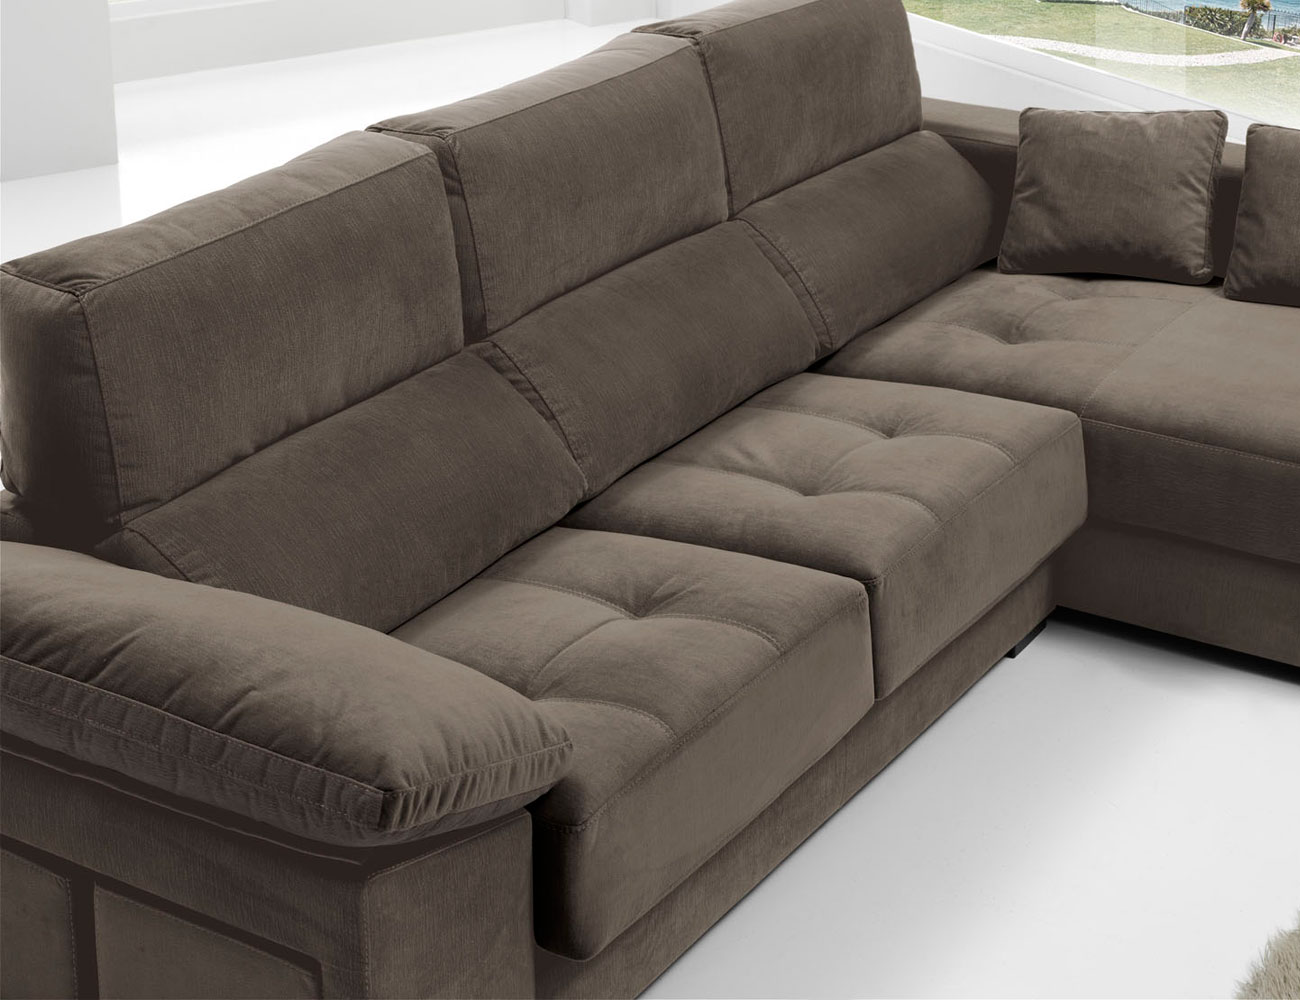 Sofa chaiselongue anti manchas bering pouf 246